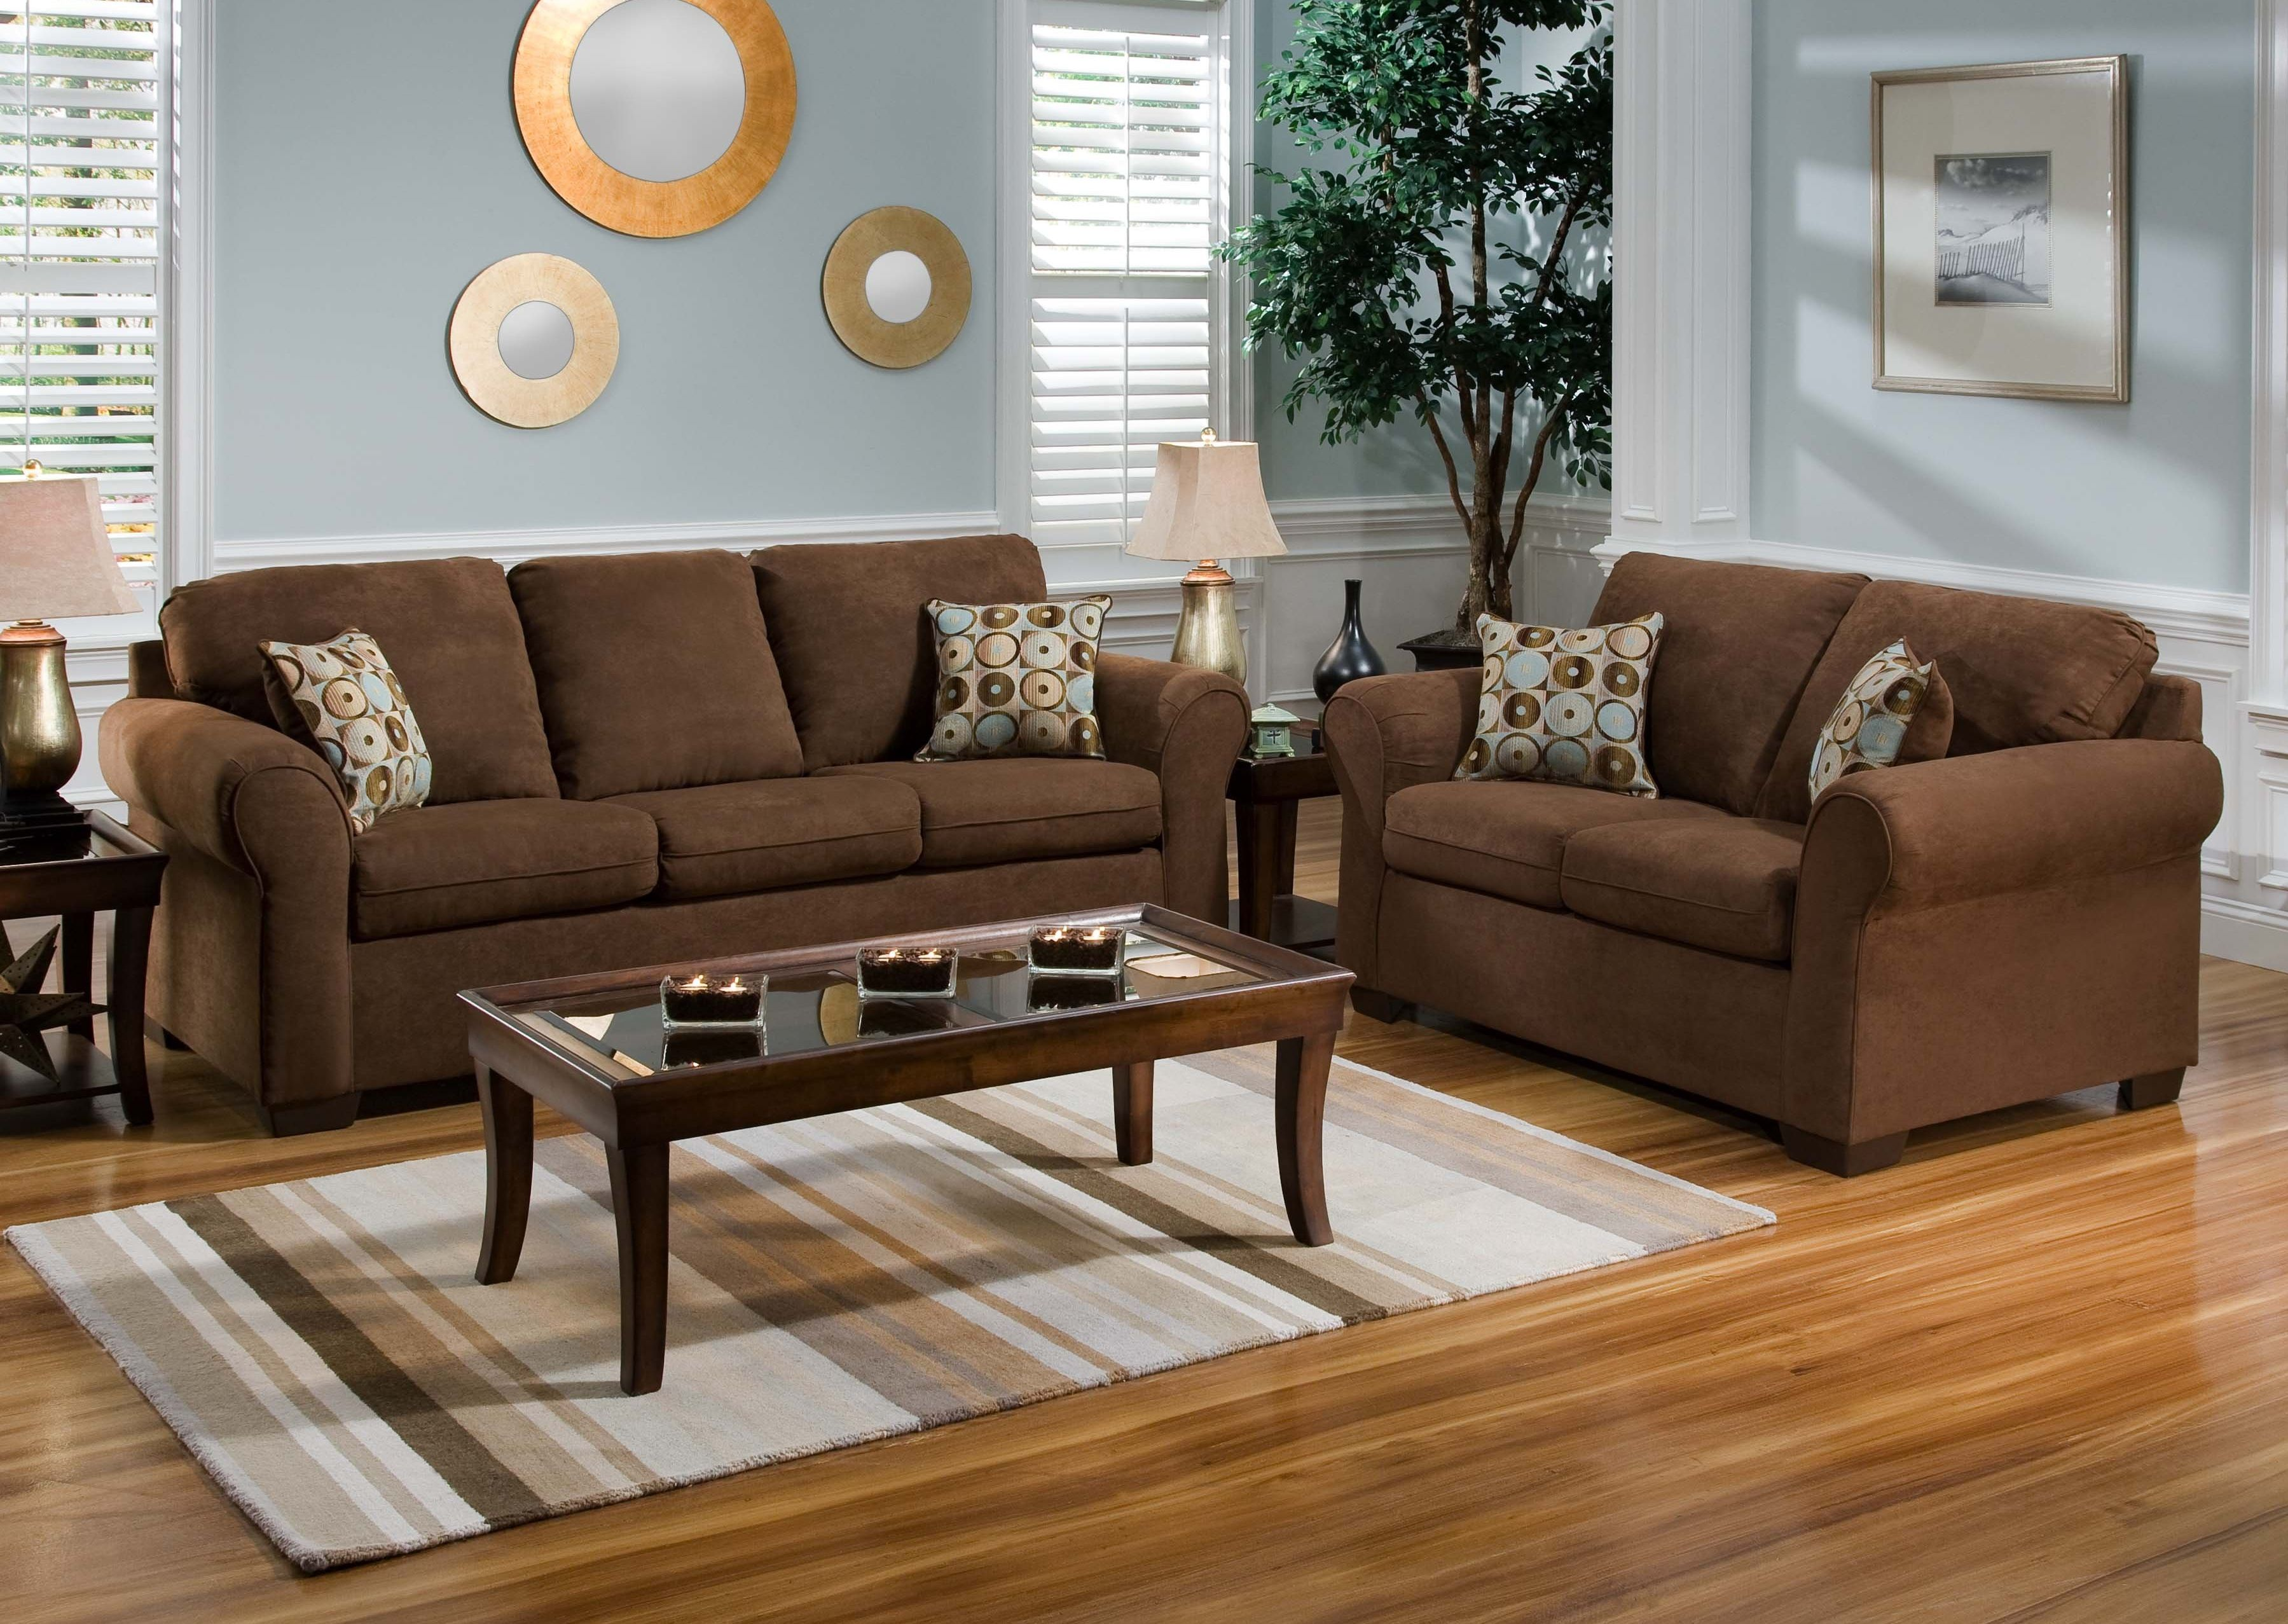 Great Chocolate Brown Sofa 63 In Modern Inspiration With